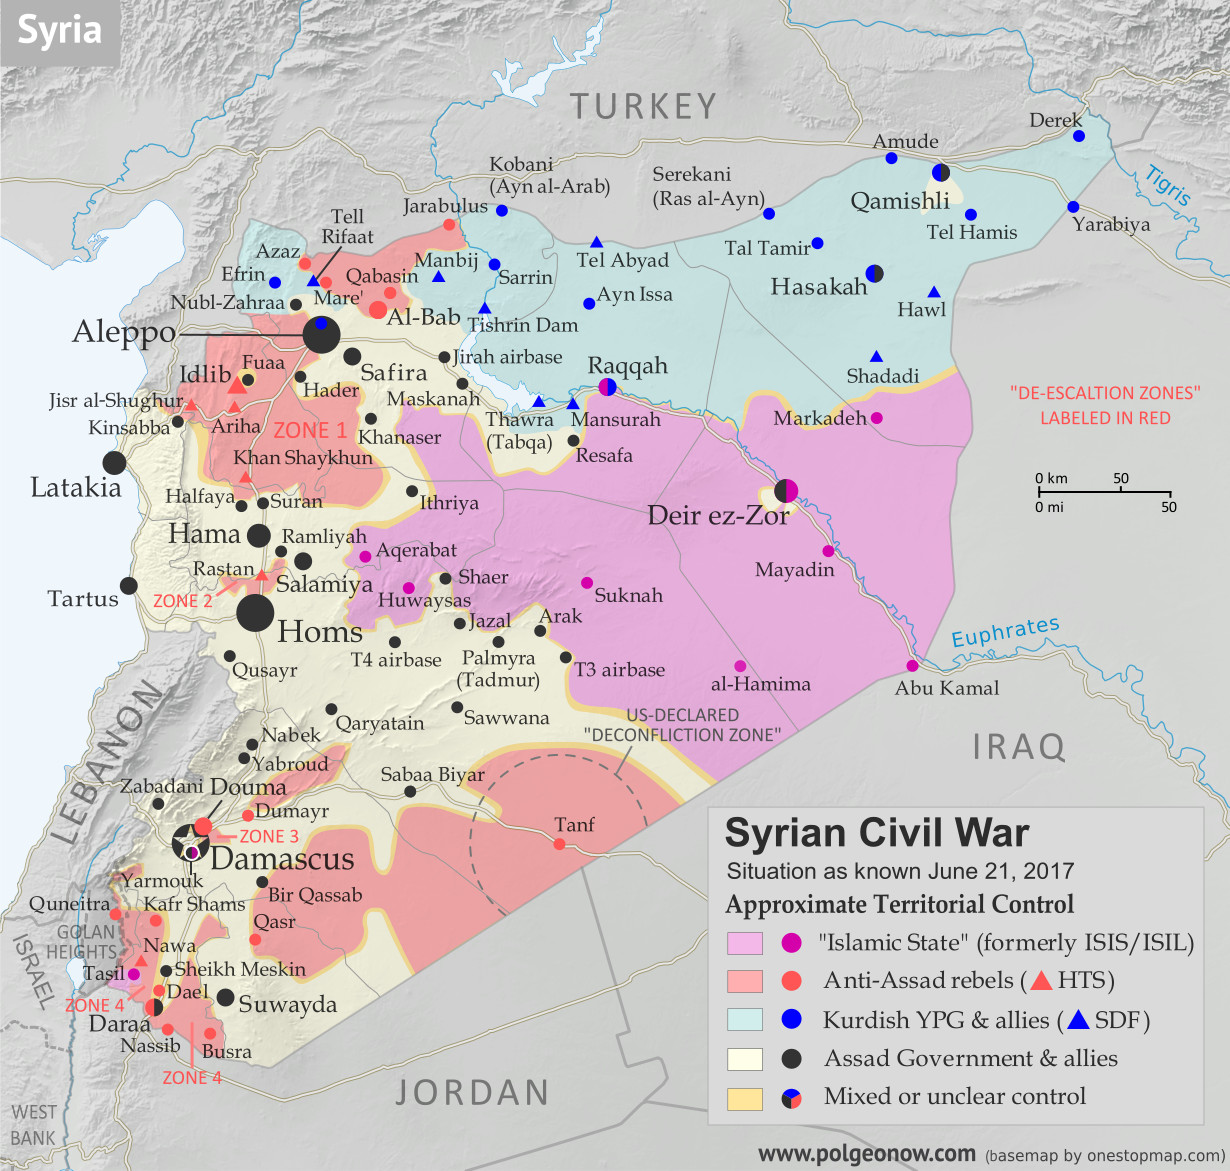 Map of Syrian Civil War (Syria control map): Fighting and territorial control in Syria in June 2017 (Free Syrian Army rebels, Kurdish YPG, Syrian Democratic Forces (SDF), Jabhat Fateh al-Sham / Hayat Tahrir al-Sham (Al-Nusra Front), Islamic State (ISIS/ISIL), and others). Includes Russia-Turkey-Iran agreed de-escalation zones and US deconfliction zone. Includes recent locations of conflict and territorial control changes, such as Raqqah, Maskanah, Arak, Tanf, Sabaa Biyar, Bir Qassab, and more. Colorblind accessible.